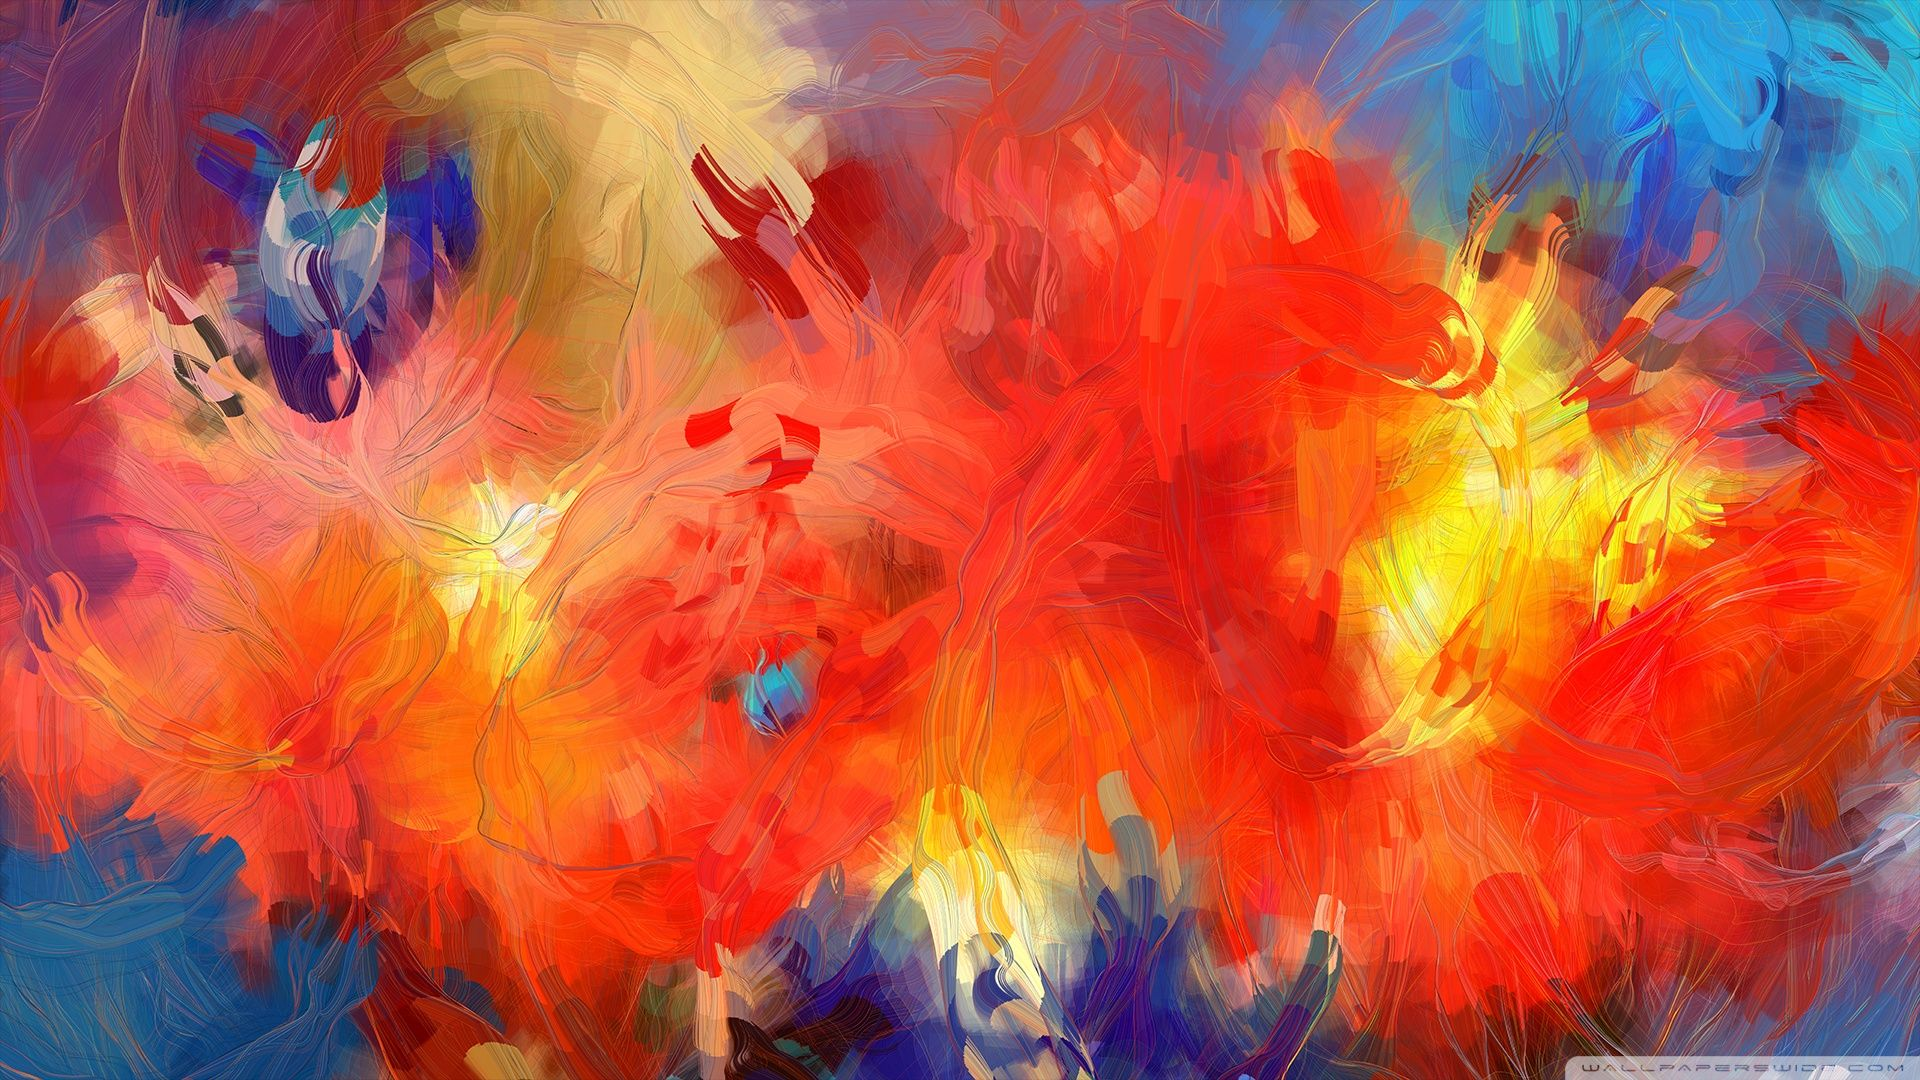 Most Famous Abstract Paintings Famous Abstract Art: Famous Abstract Paintings - Wallpaper.